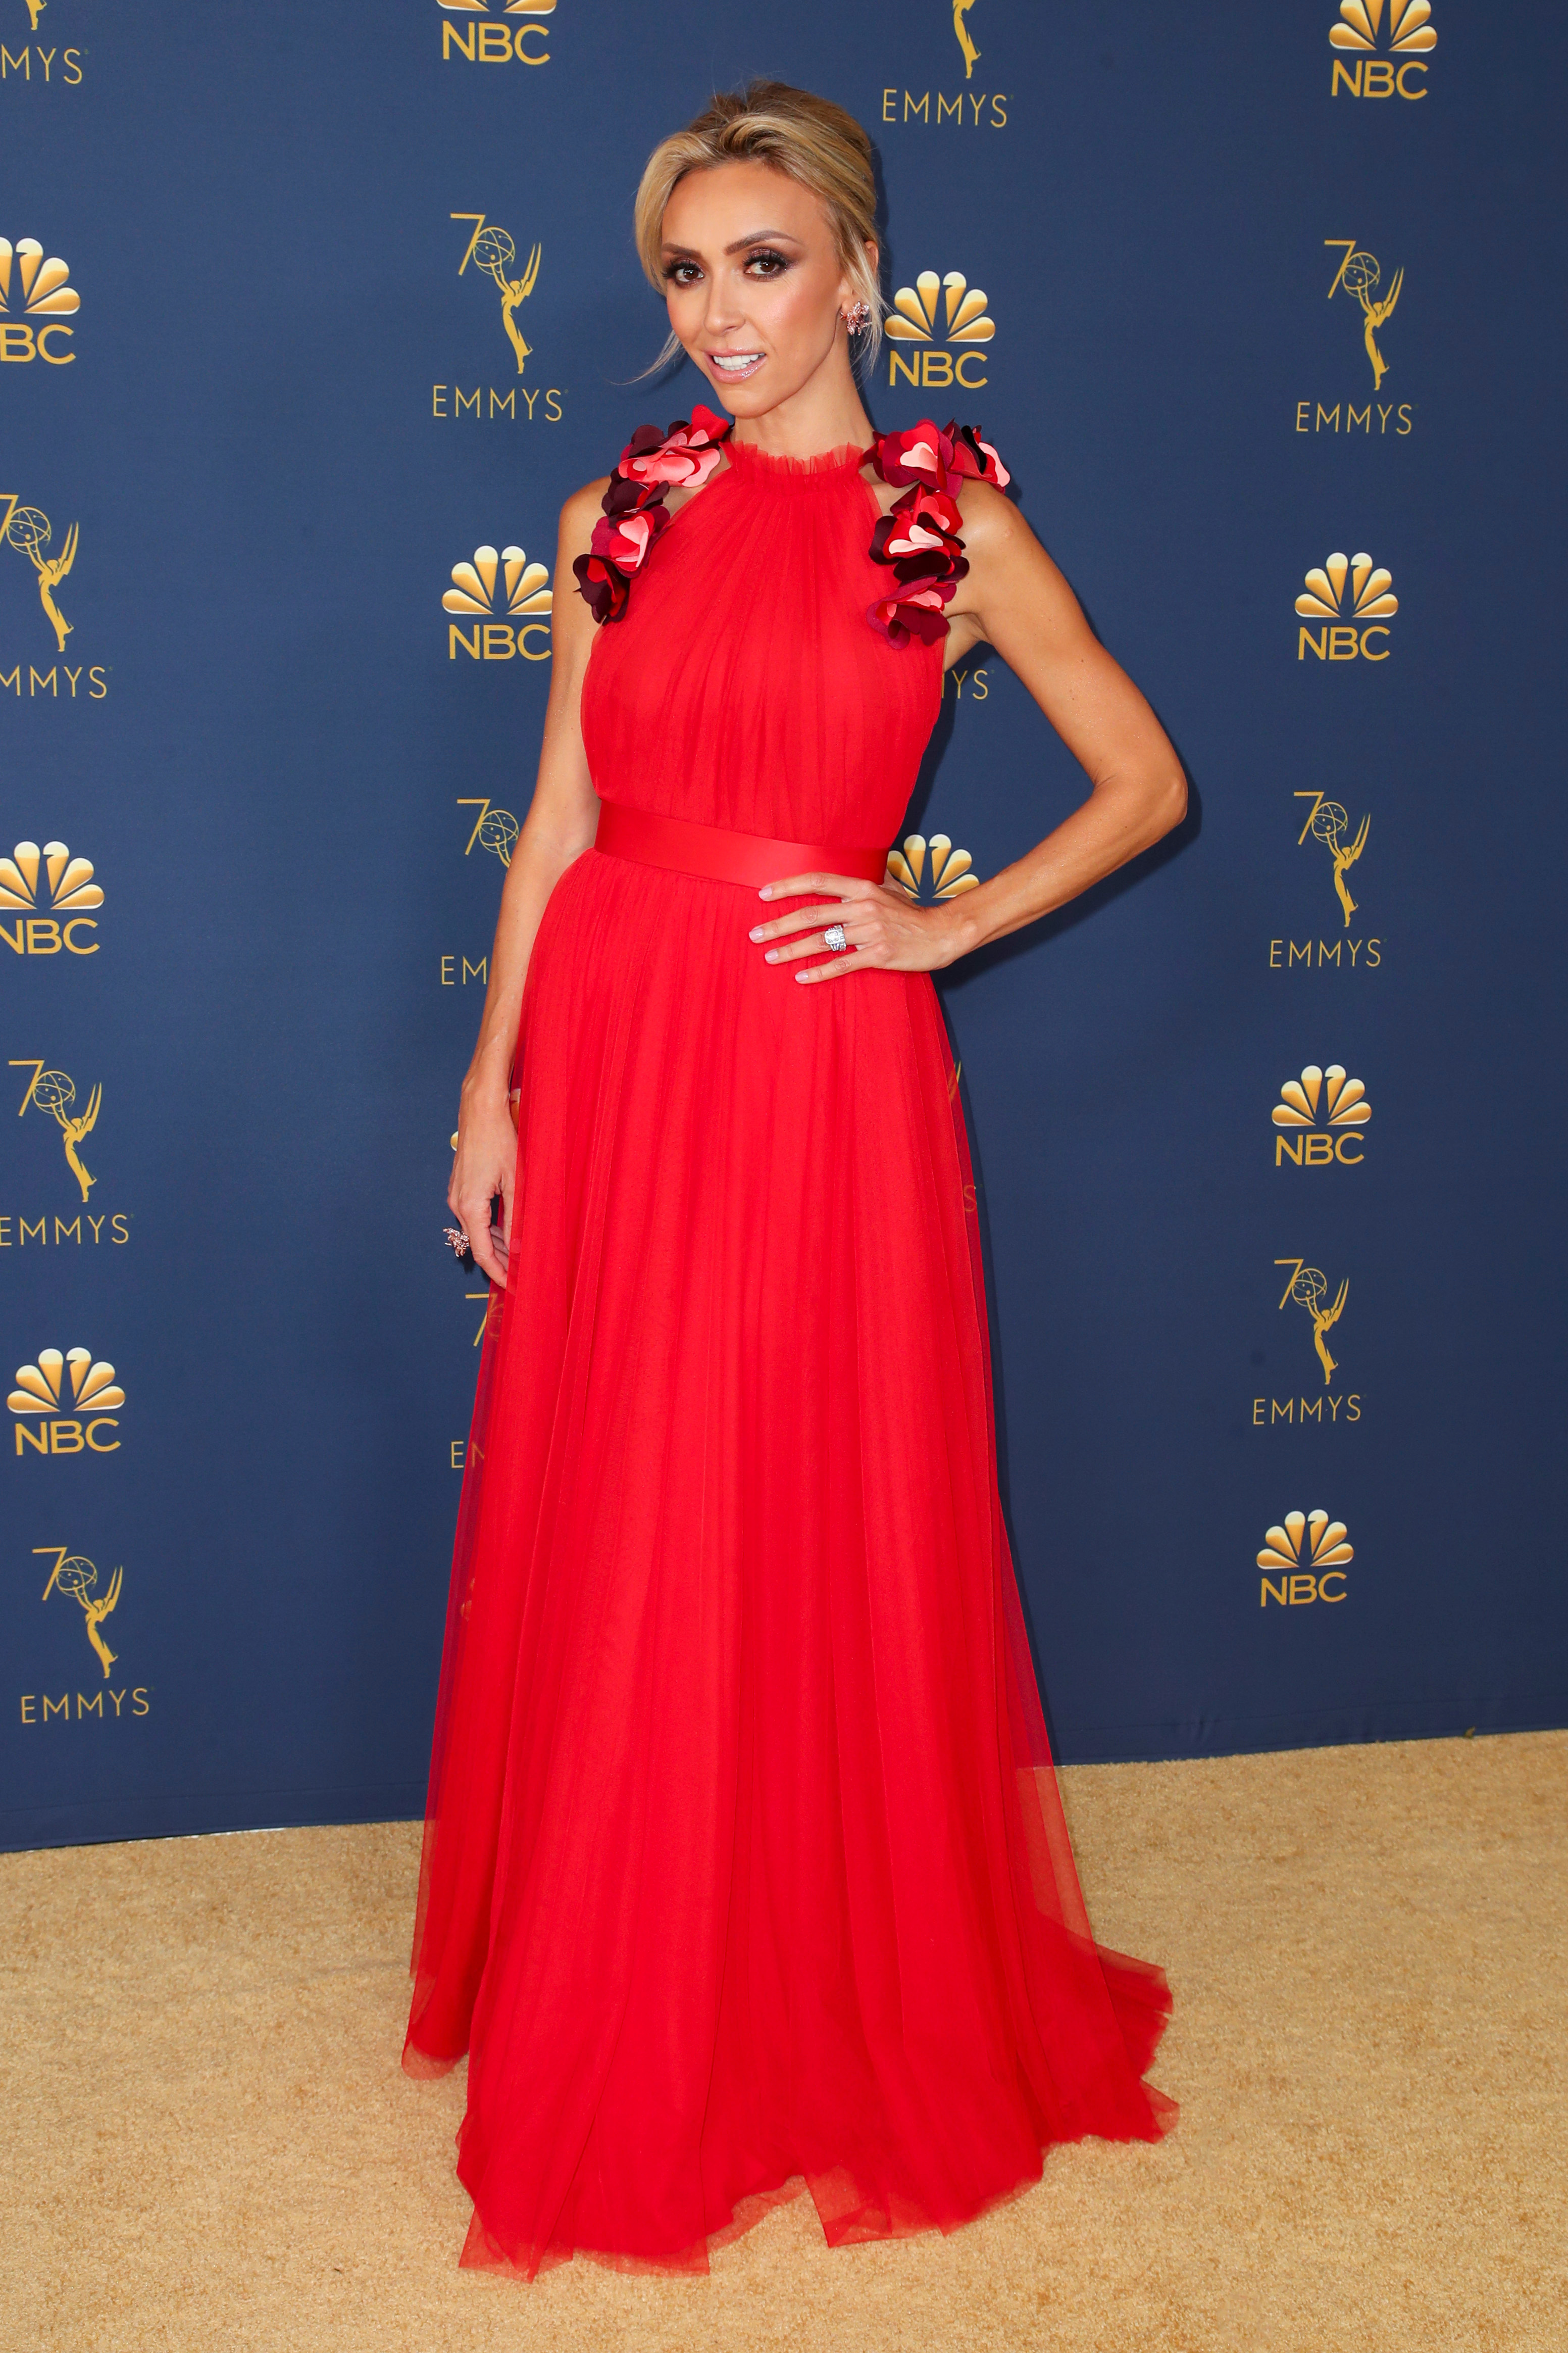 Giuliana Rancic attends the 70th Primetime Emmy Awards in Los Angeles on Sept. 17, 2018.